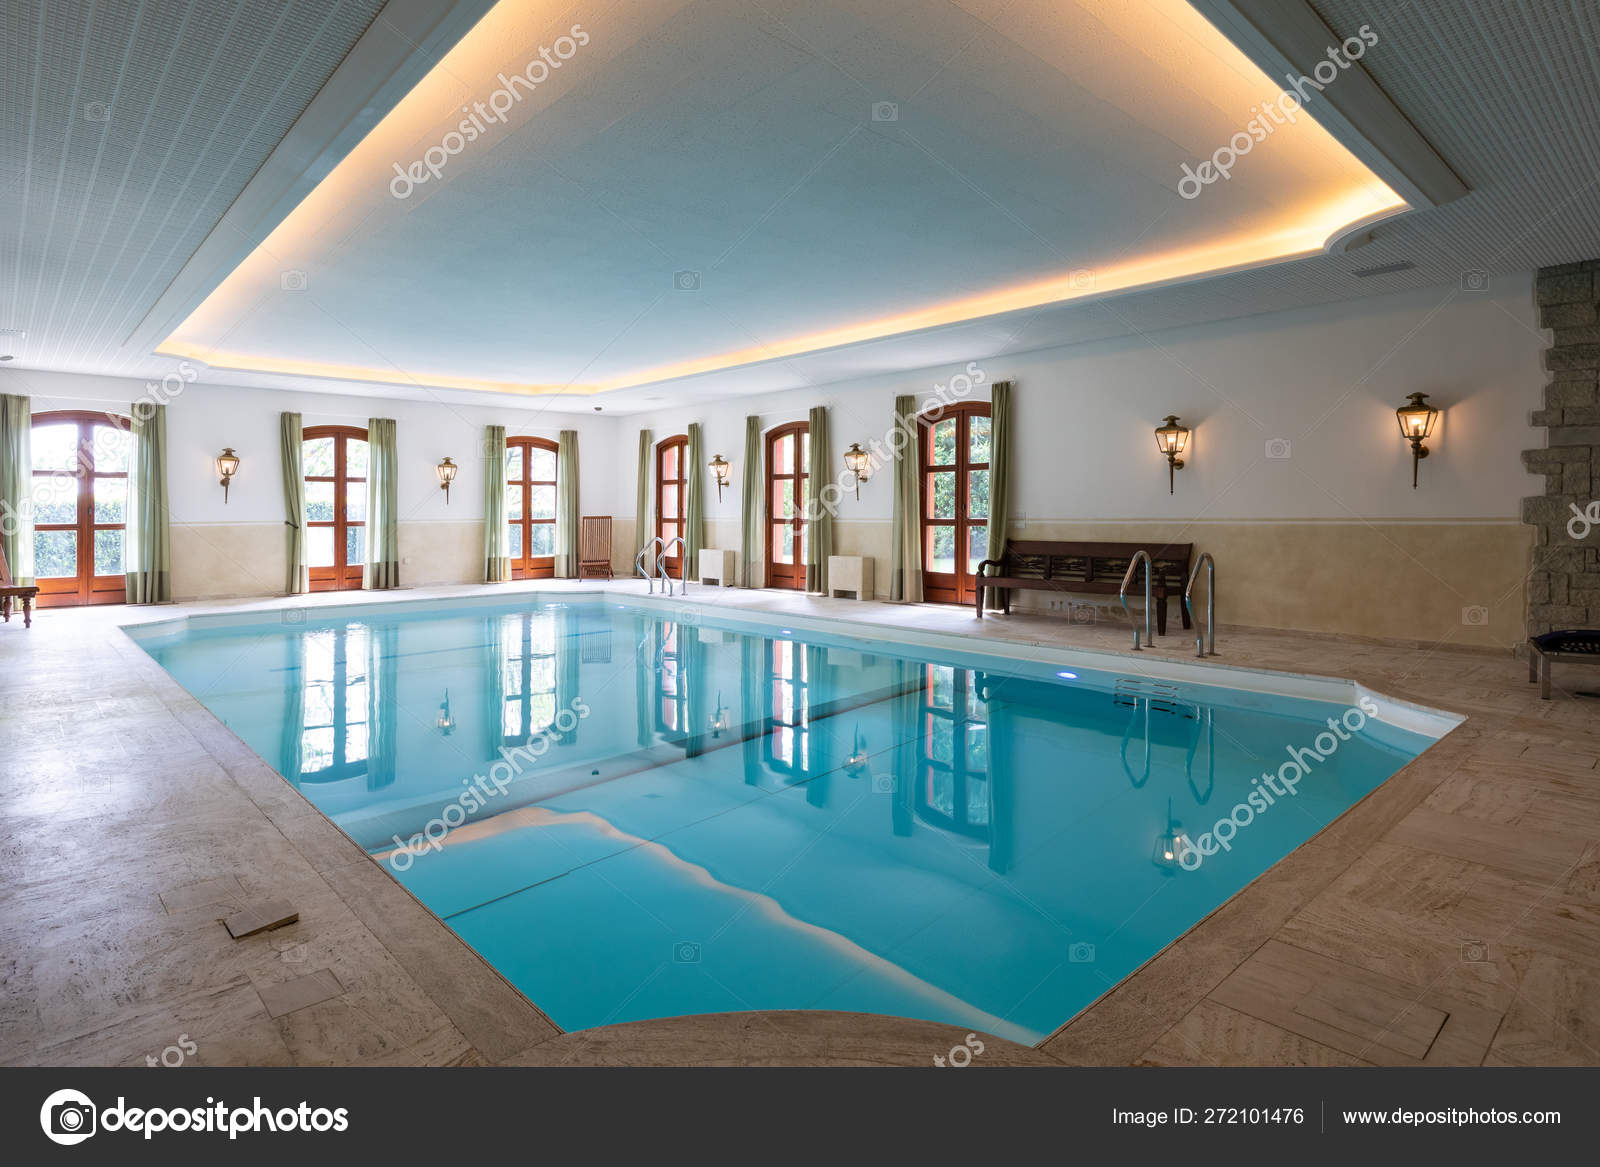 Indoor Swimming Pool In A Private Luxury Villa Stock Photo C Zveiger 272101476